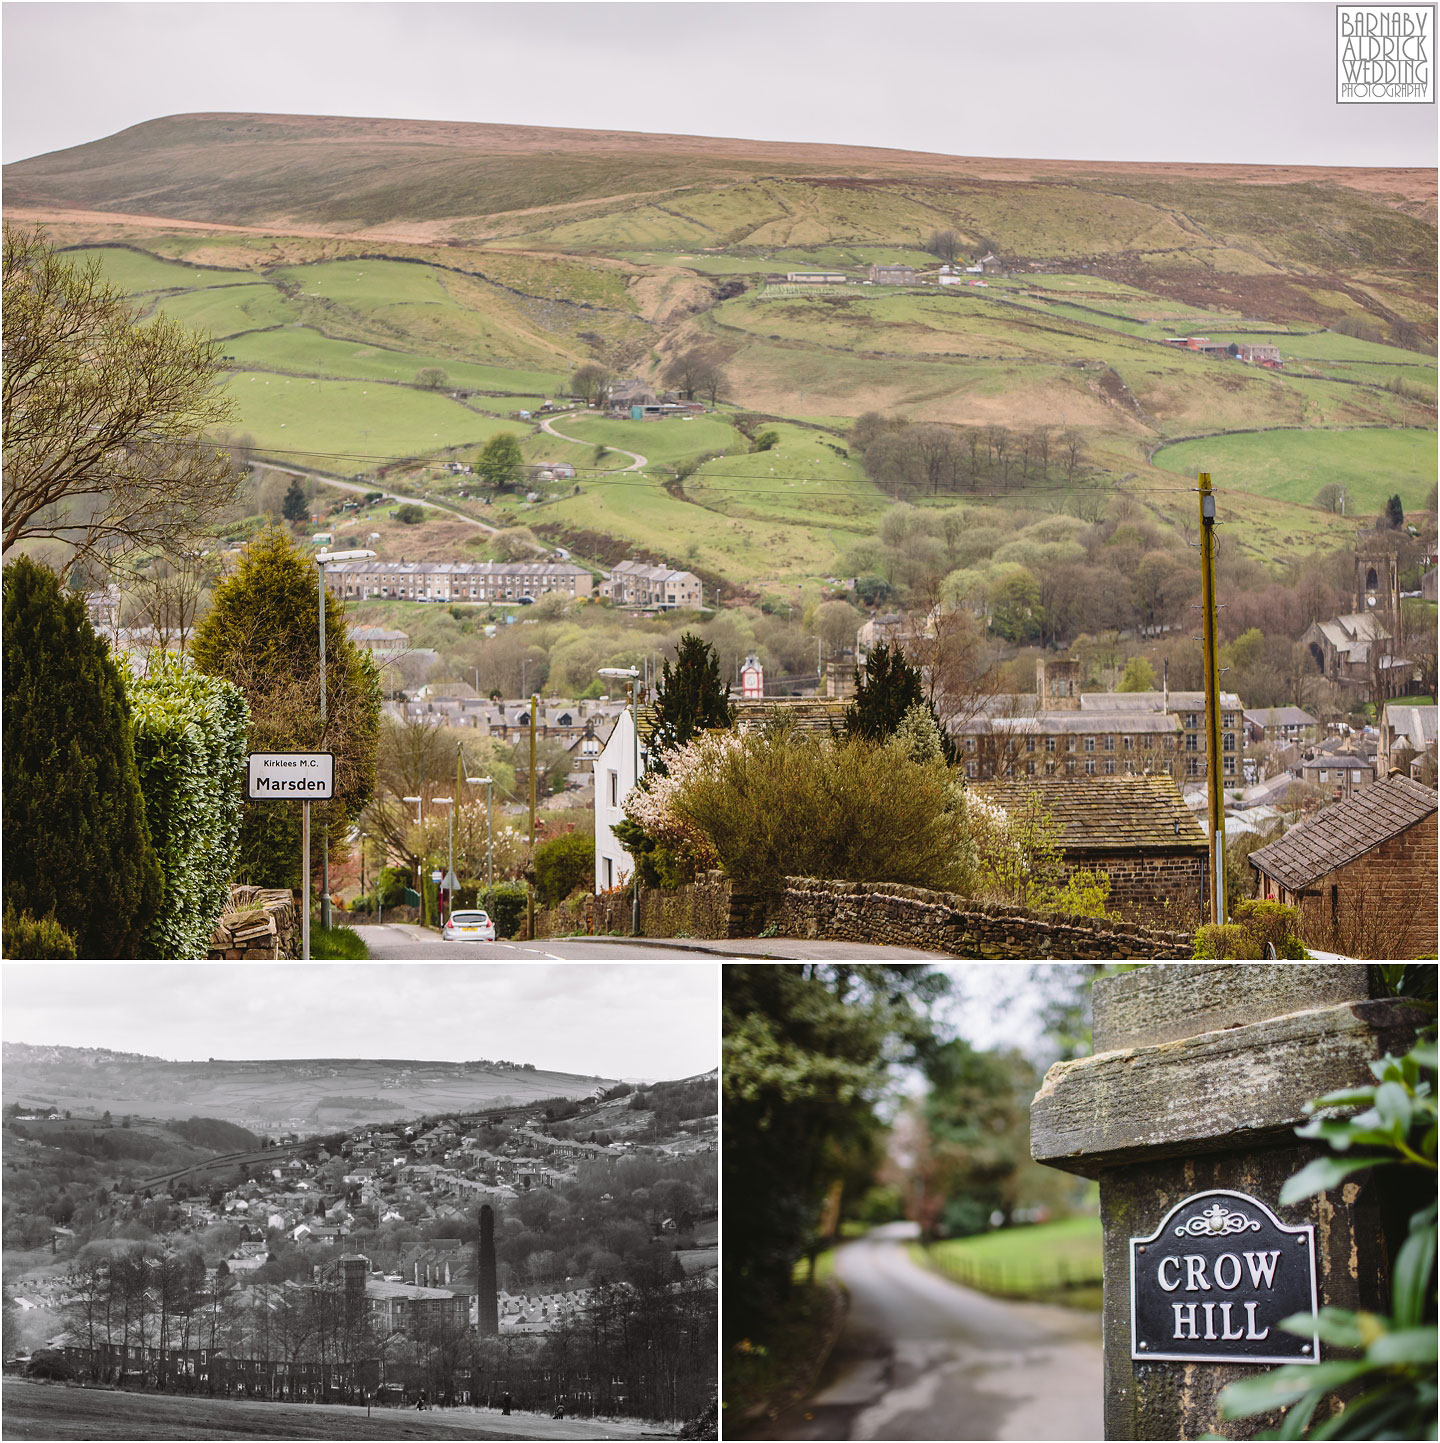 Crow Hill in Marsden in South Yorkshire, by Photographer Barnaby Aldrick